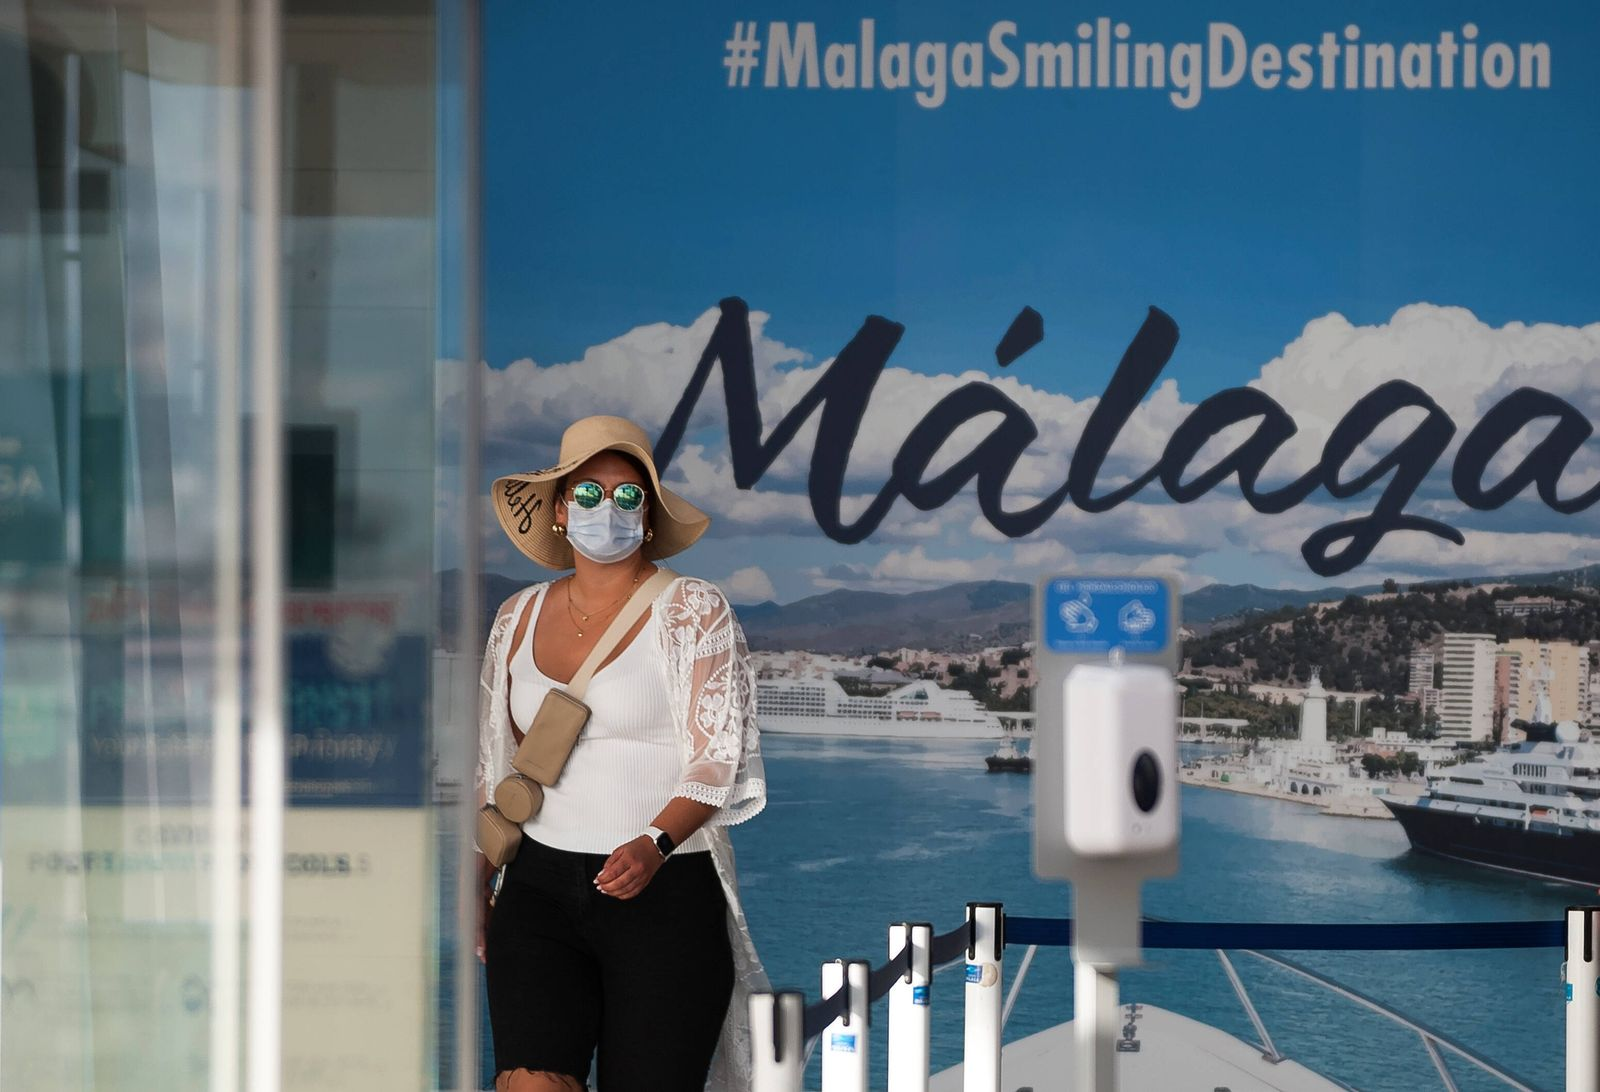 June 15, 2021, Malaga, Spain: A German tourist from the cruise ship seen next to an advertising panel at the port..The